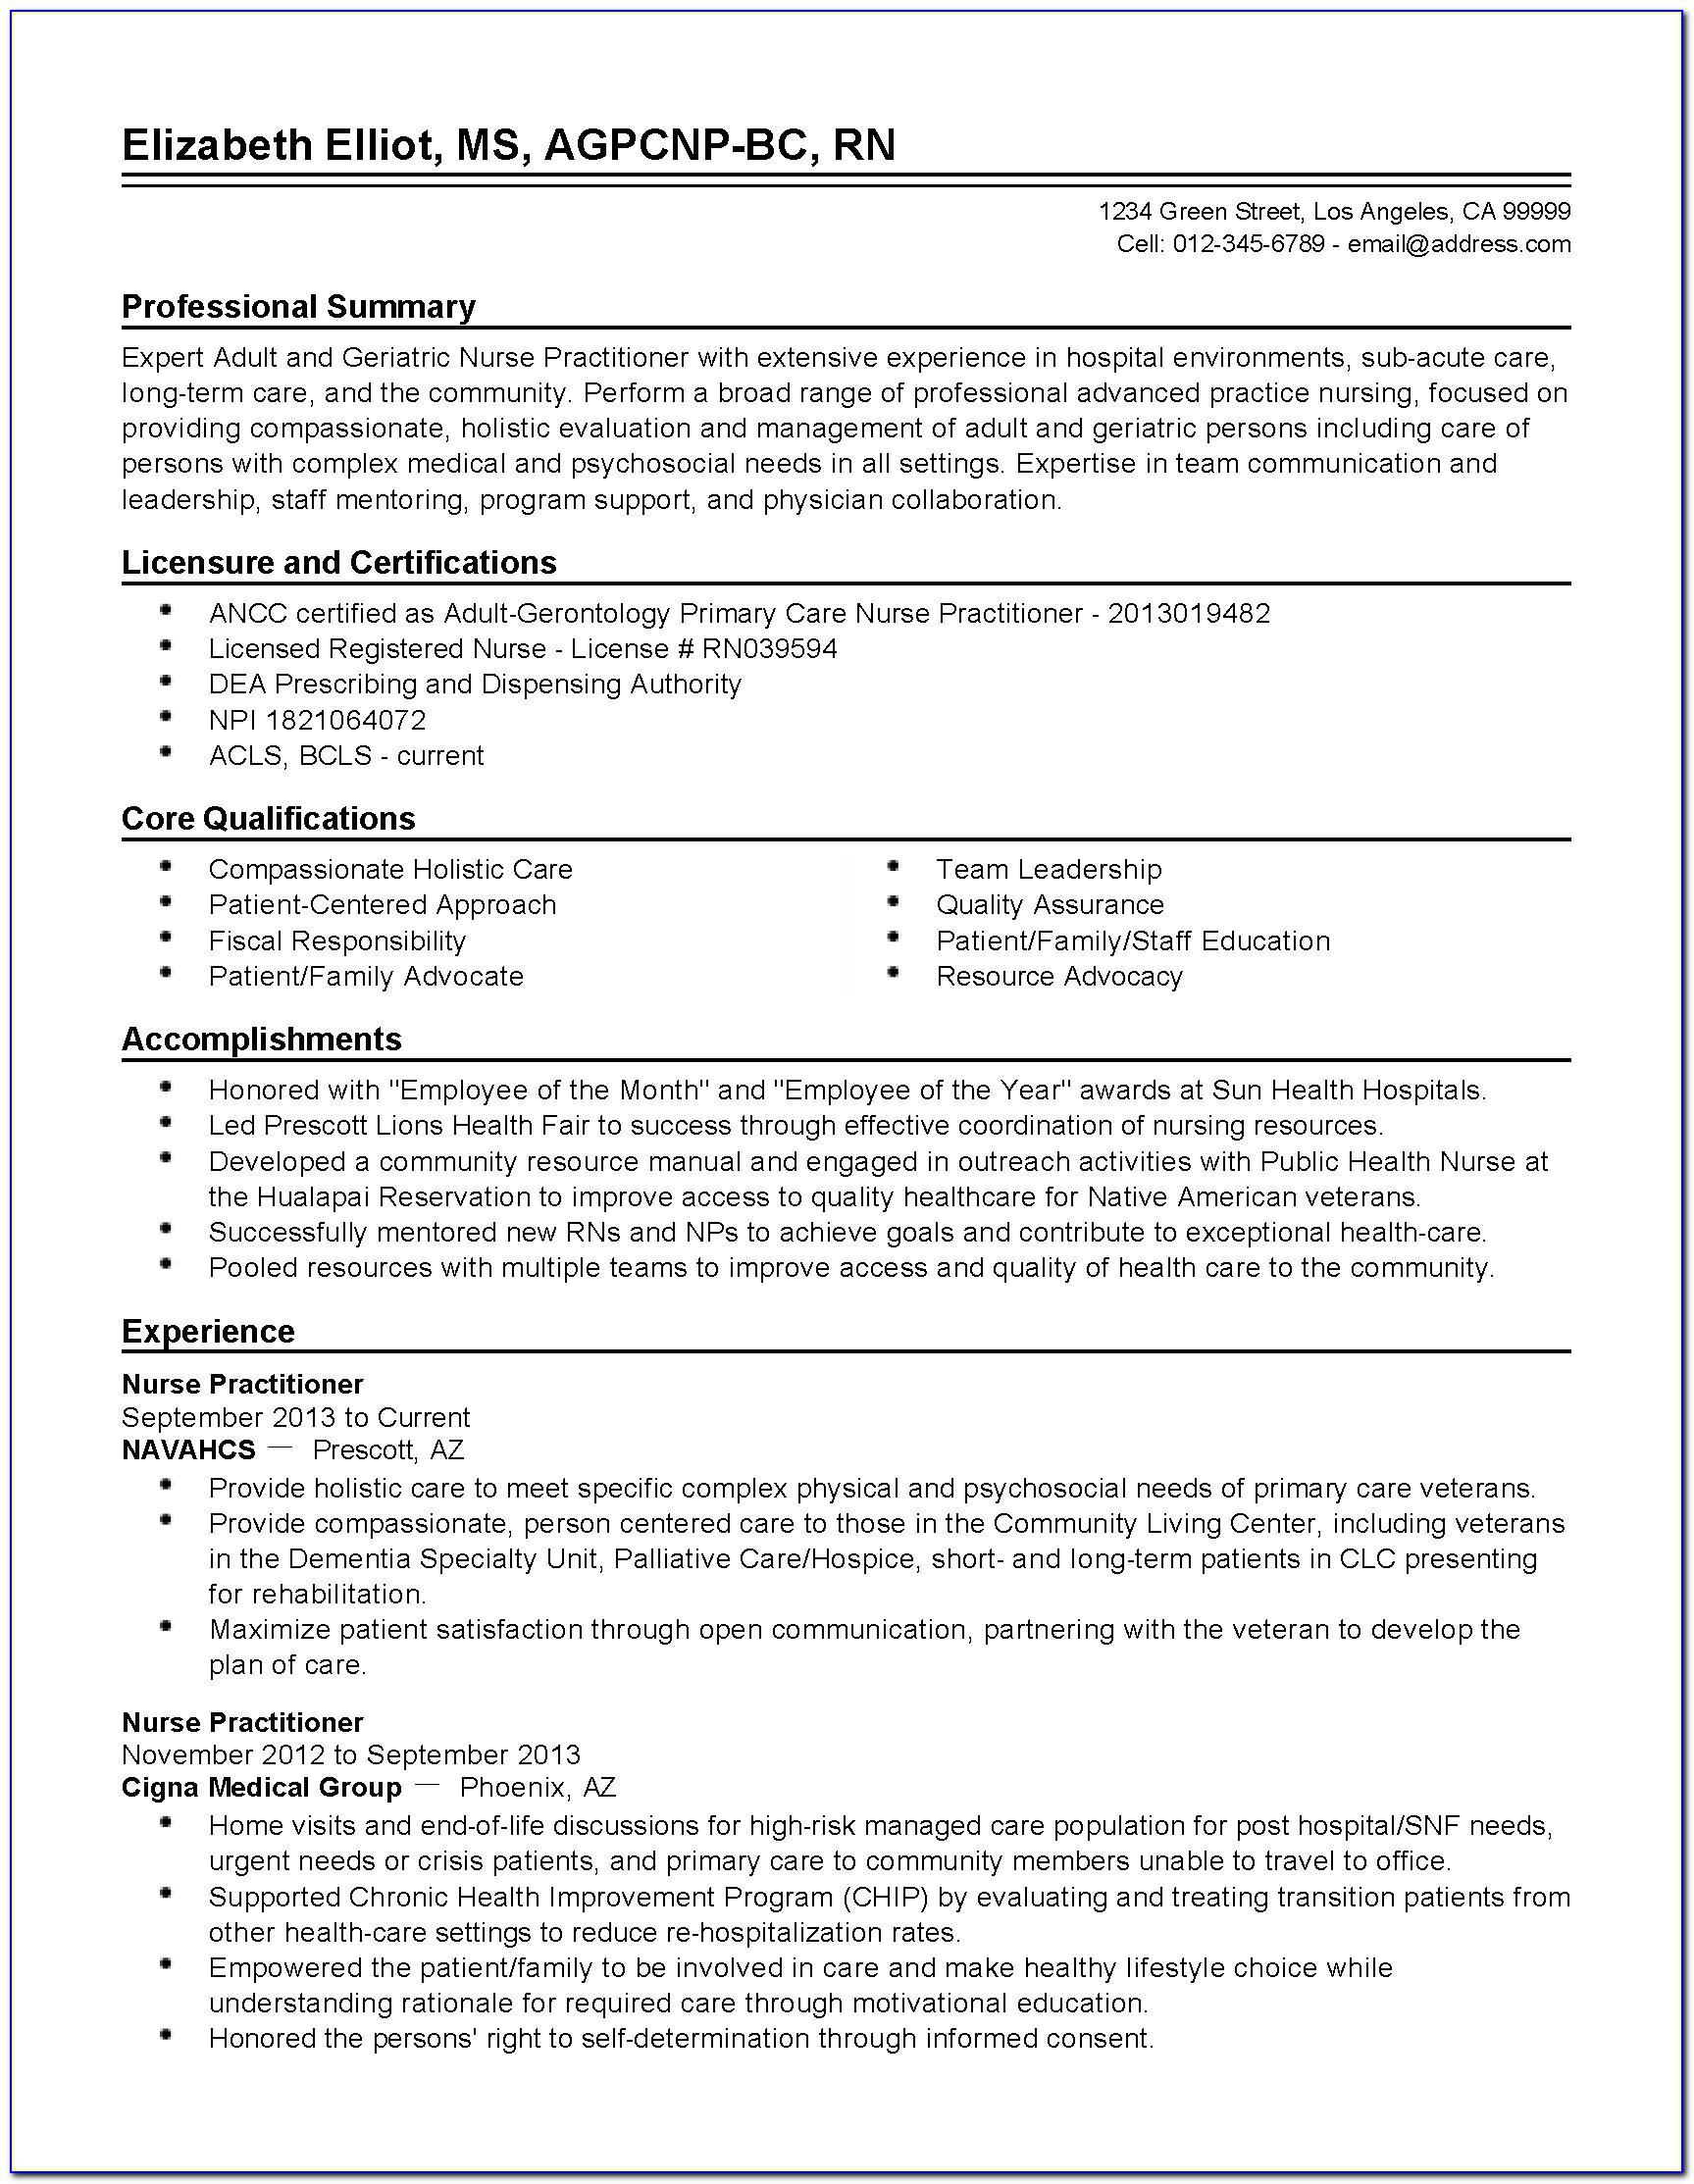 Sample Nurse Practitioner Curriculum Vitae Template